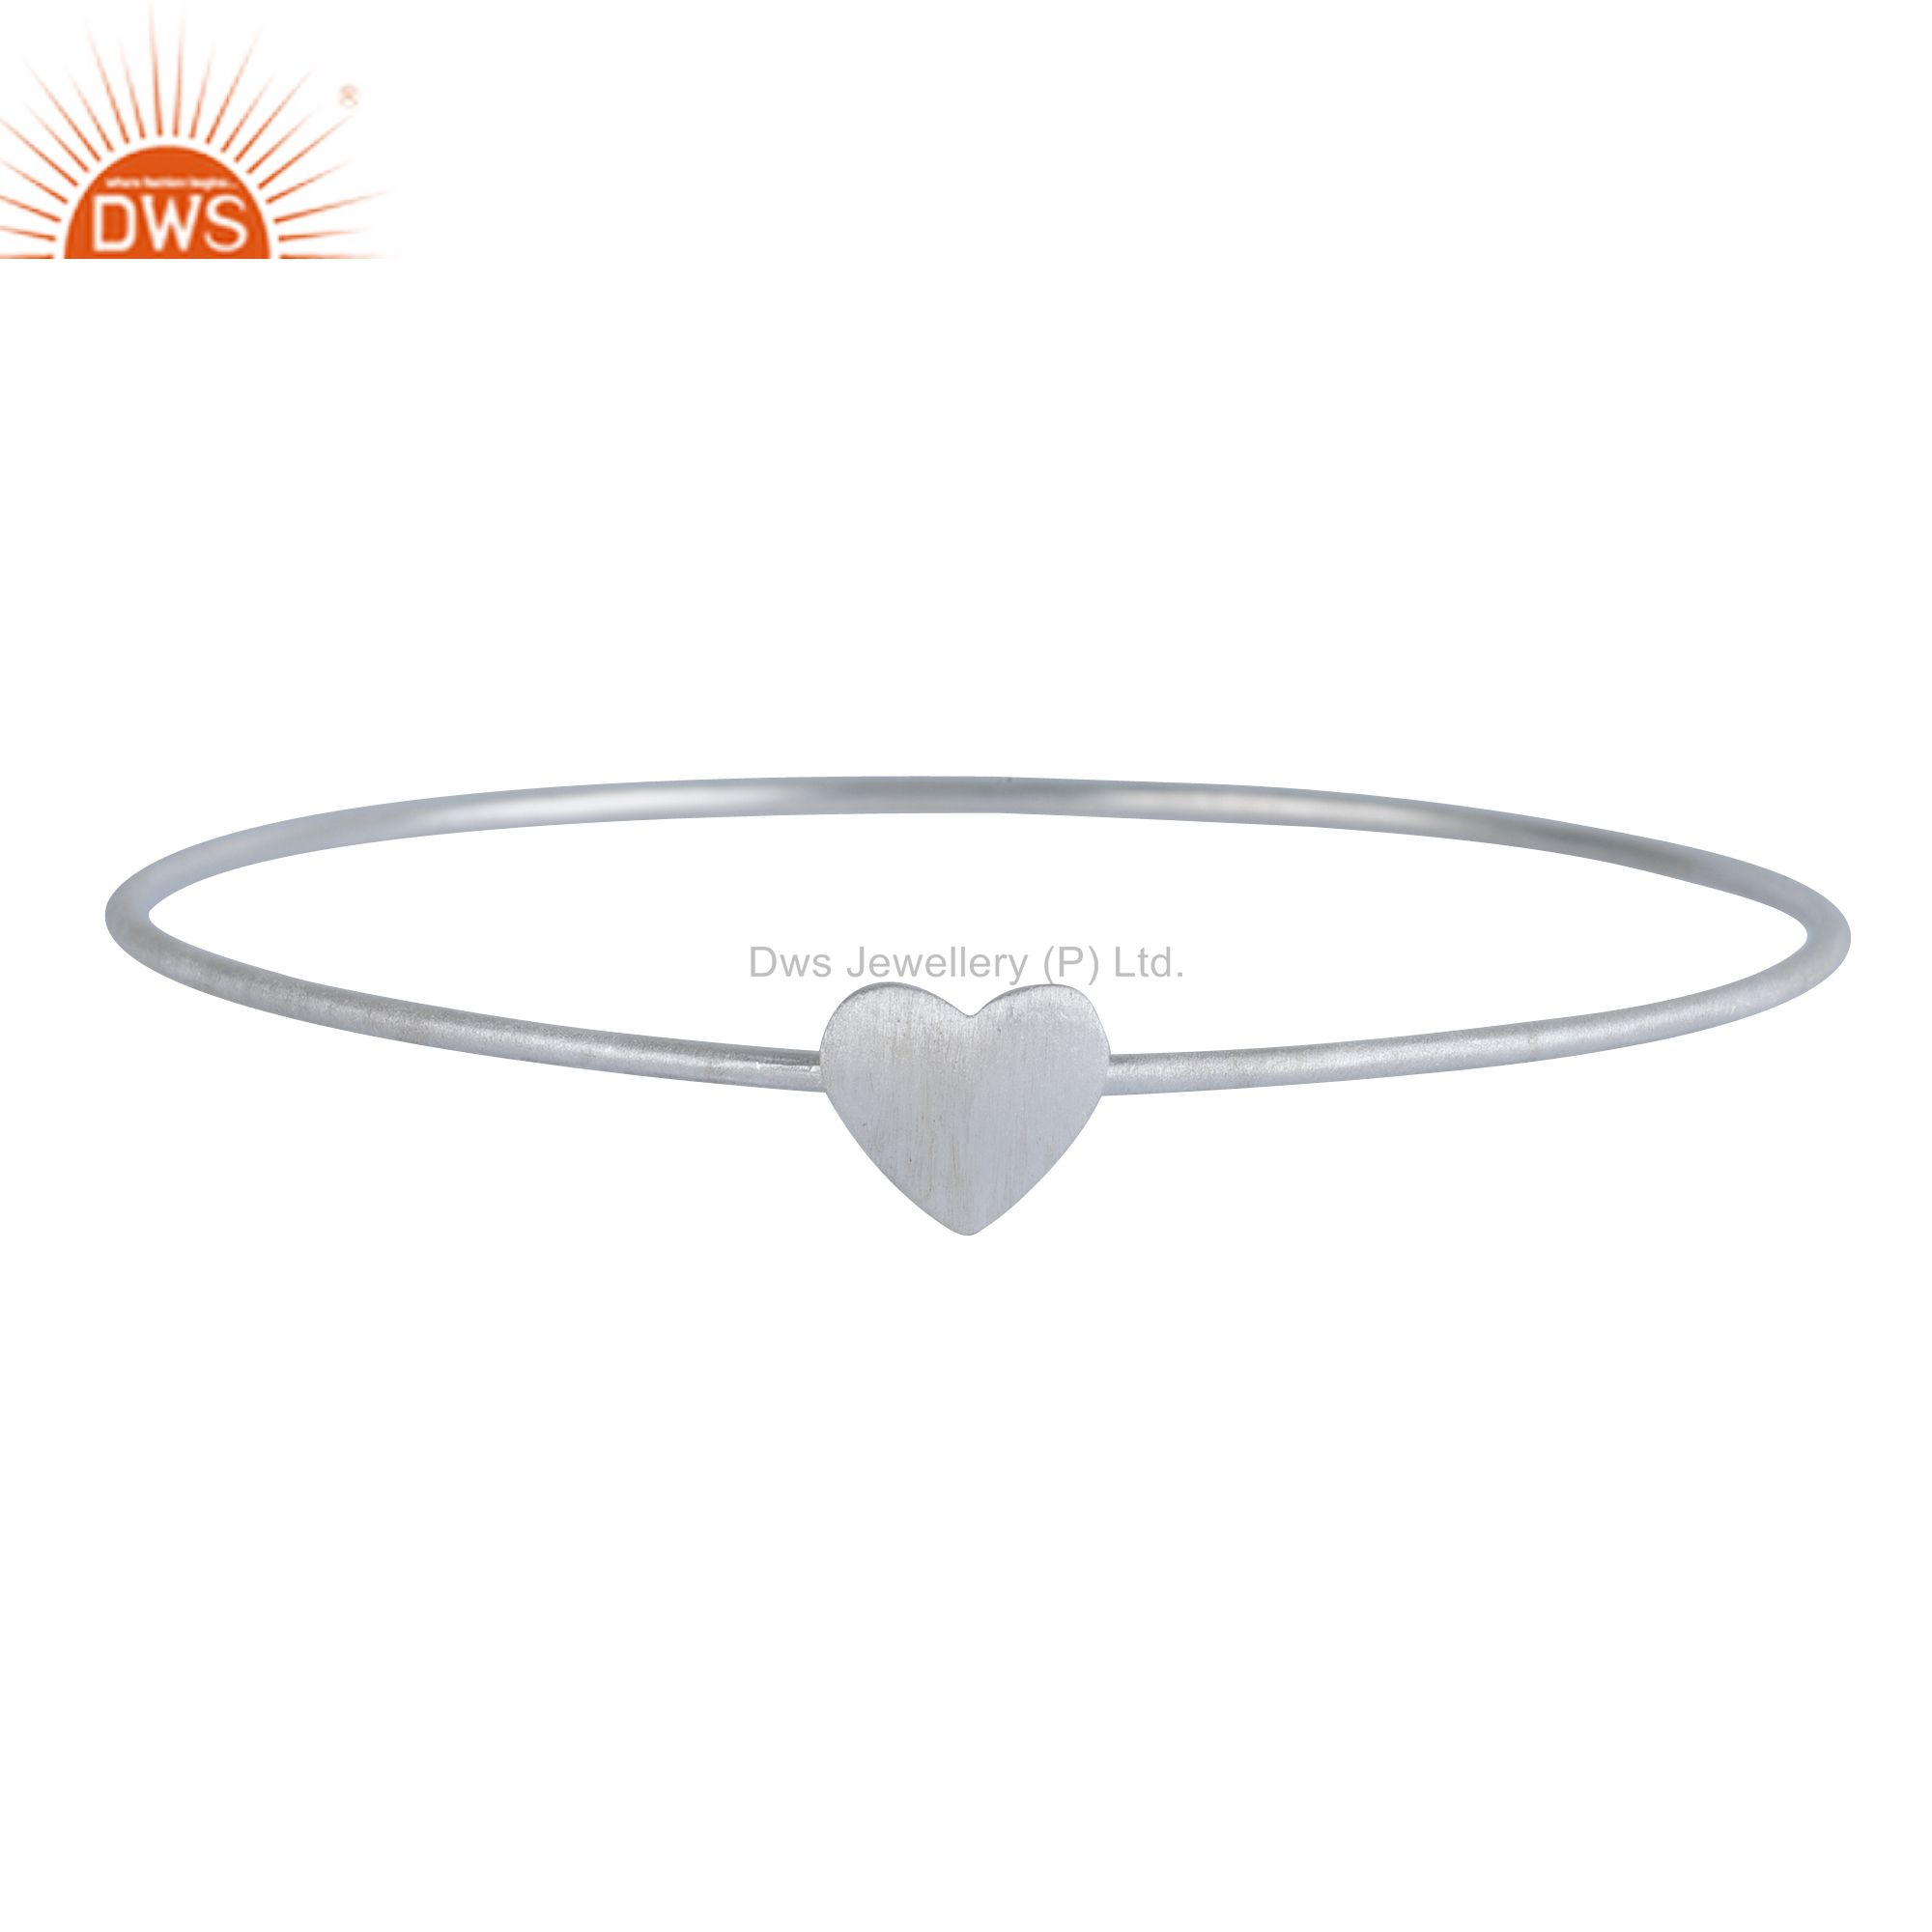 Handmade 925 solid sterling silver stackable heart bangle jewelry